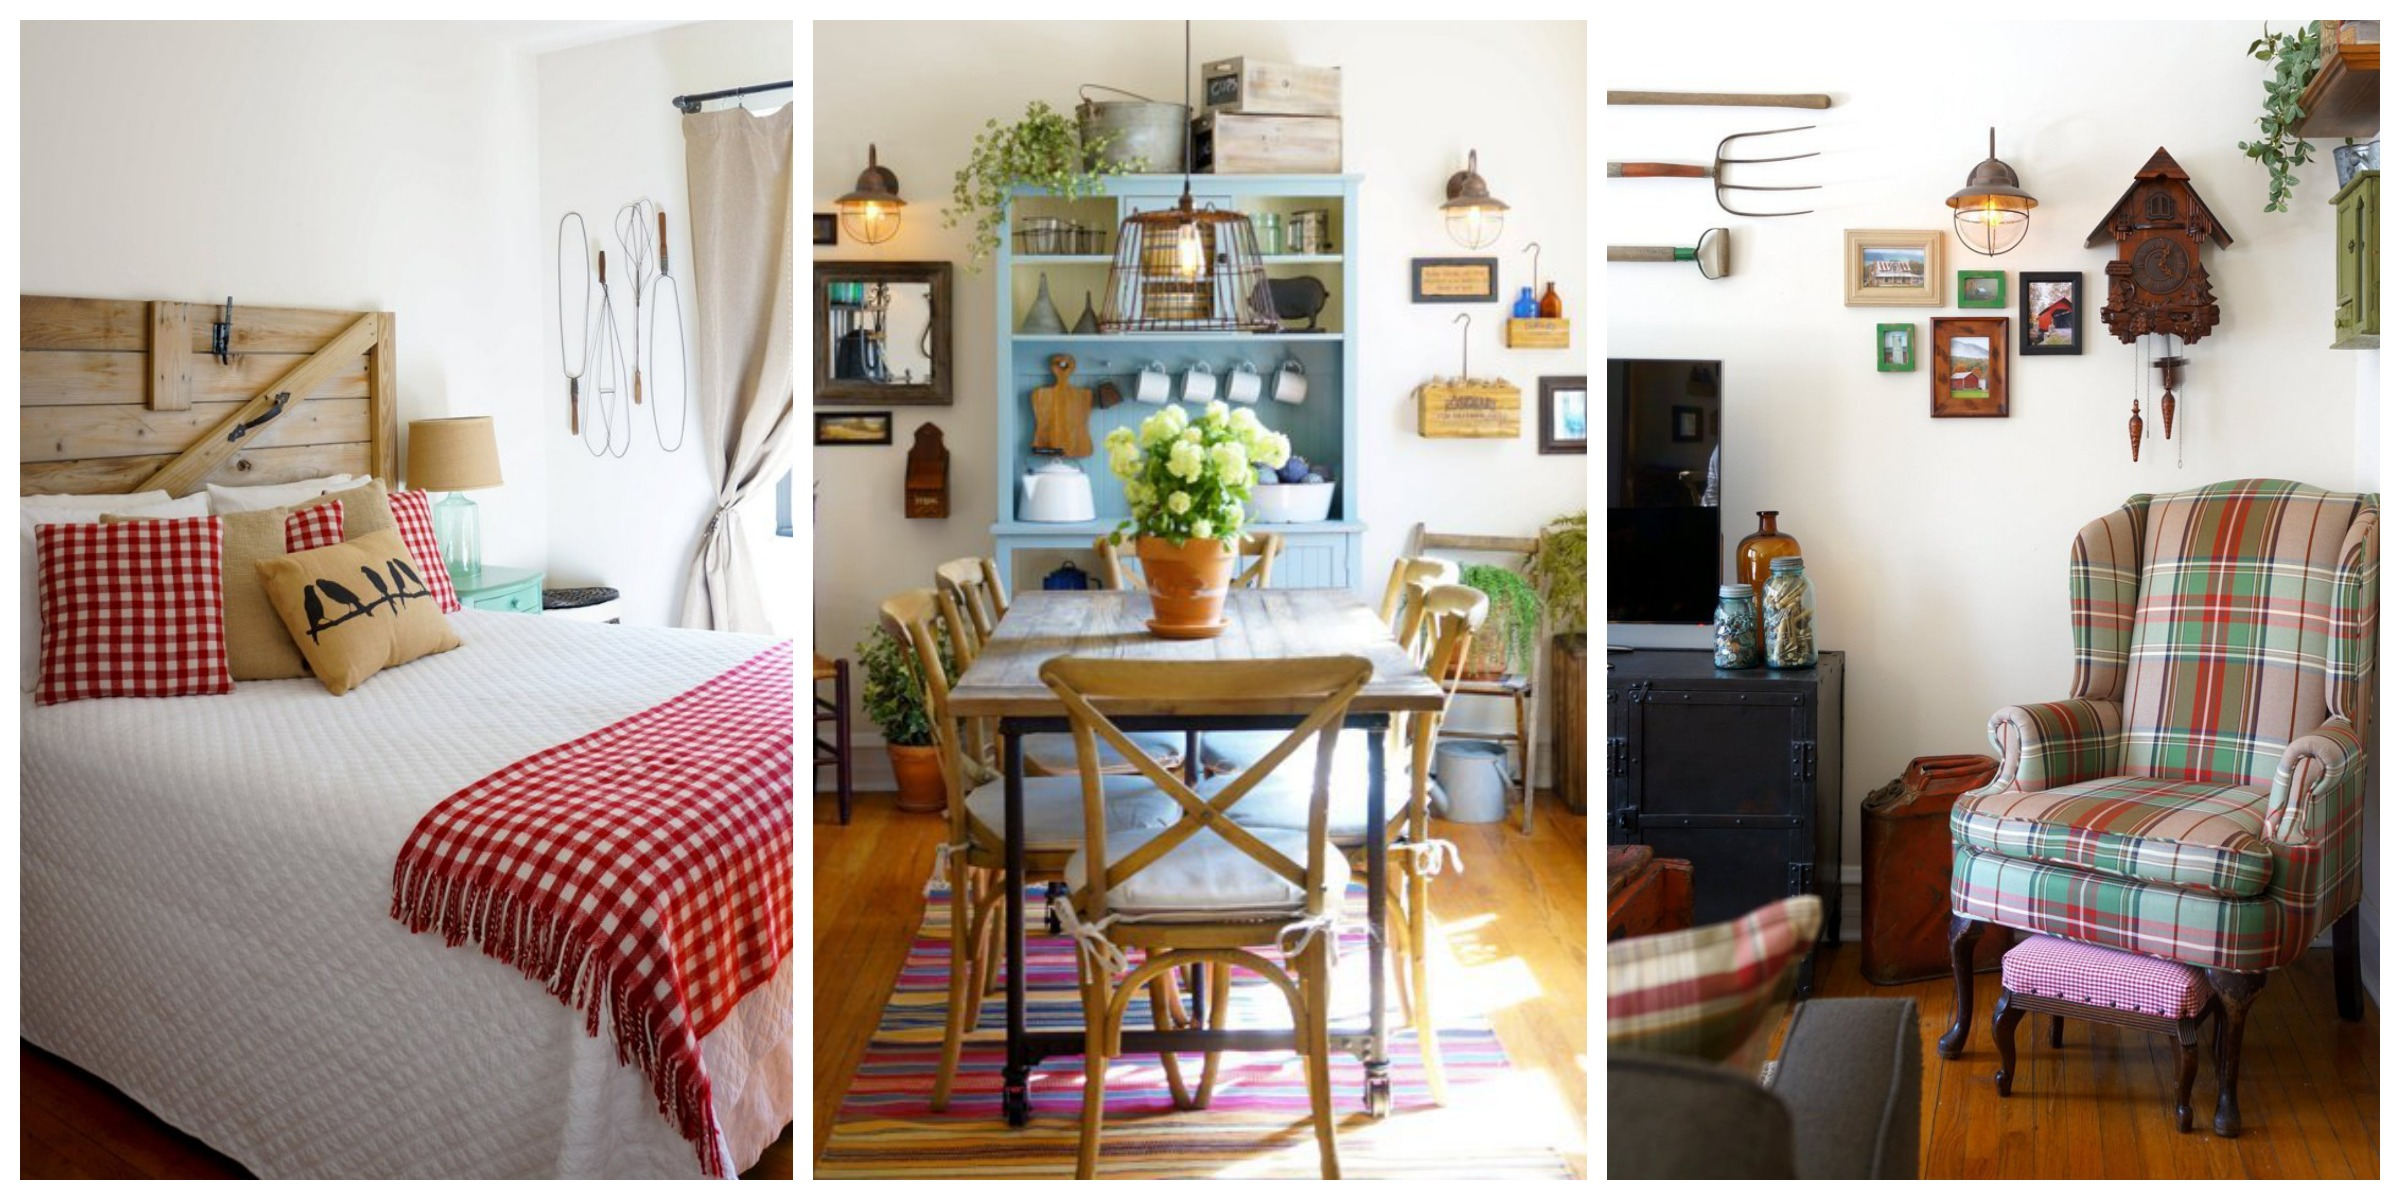 We re Crushing on the Primitive Country Decor in This City Apartment Fa